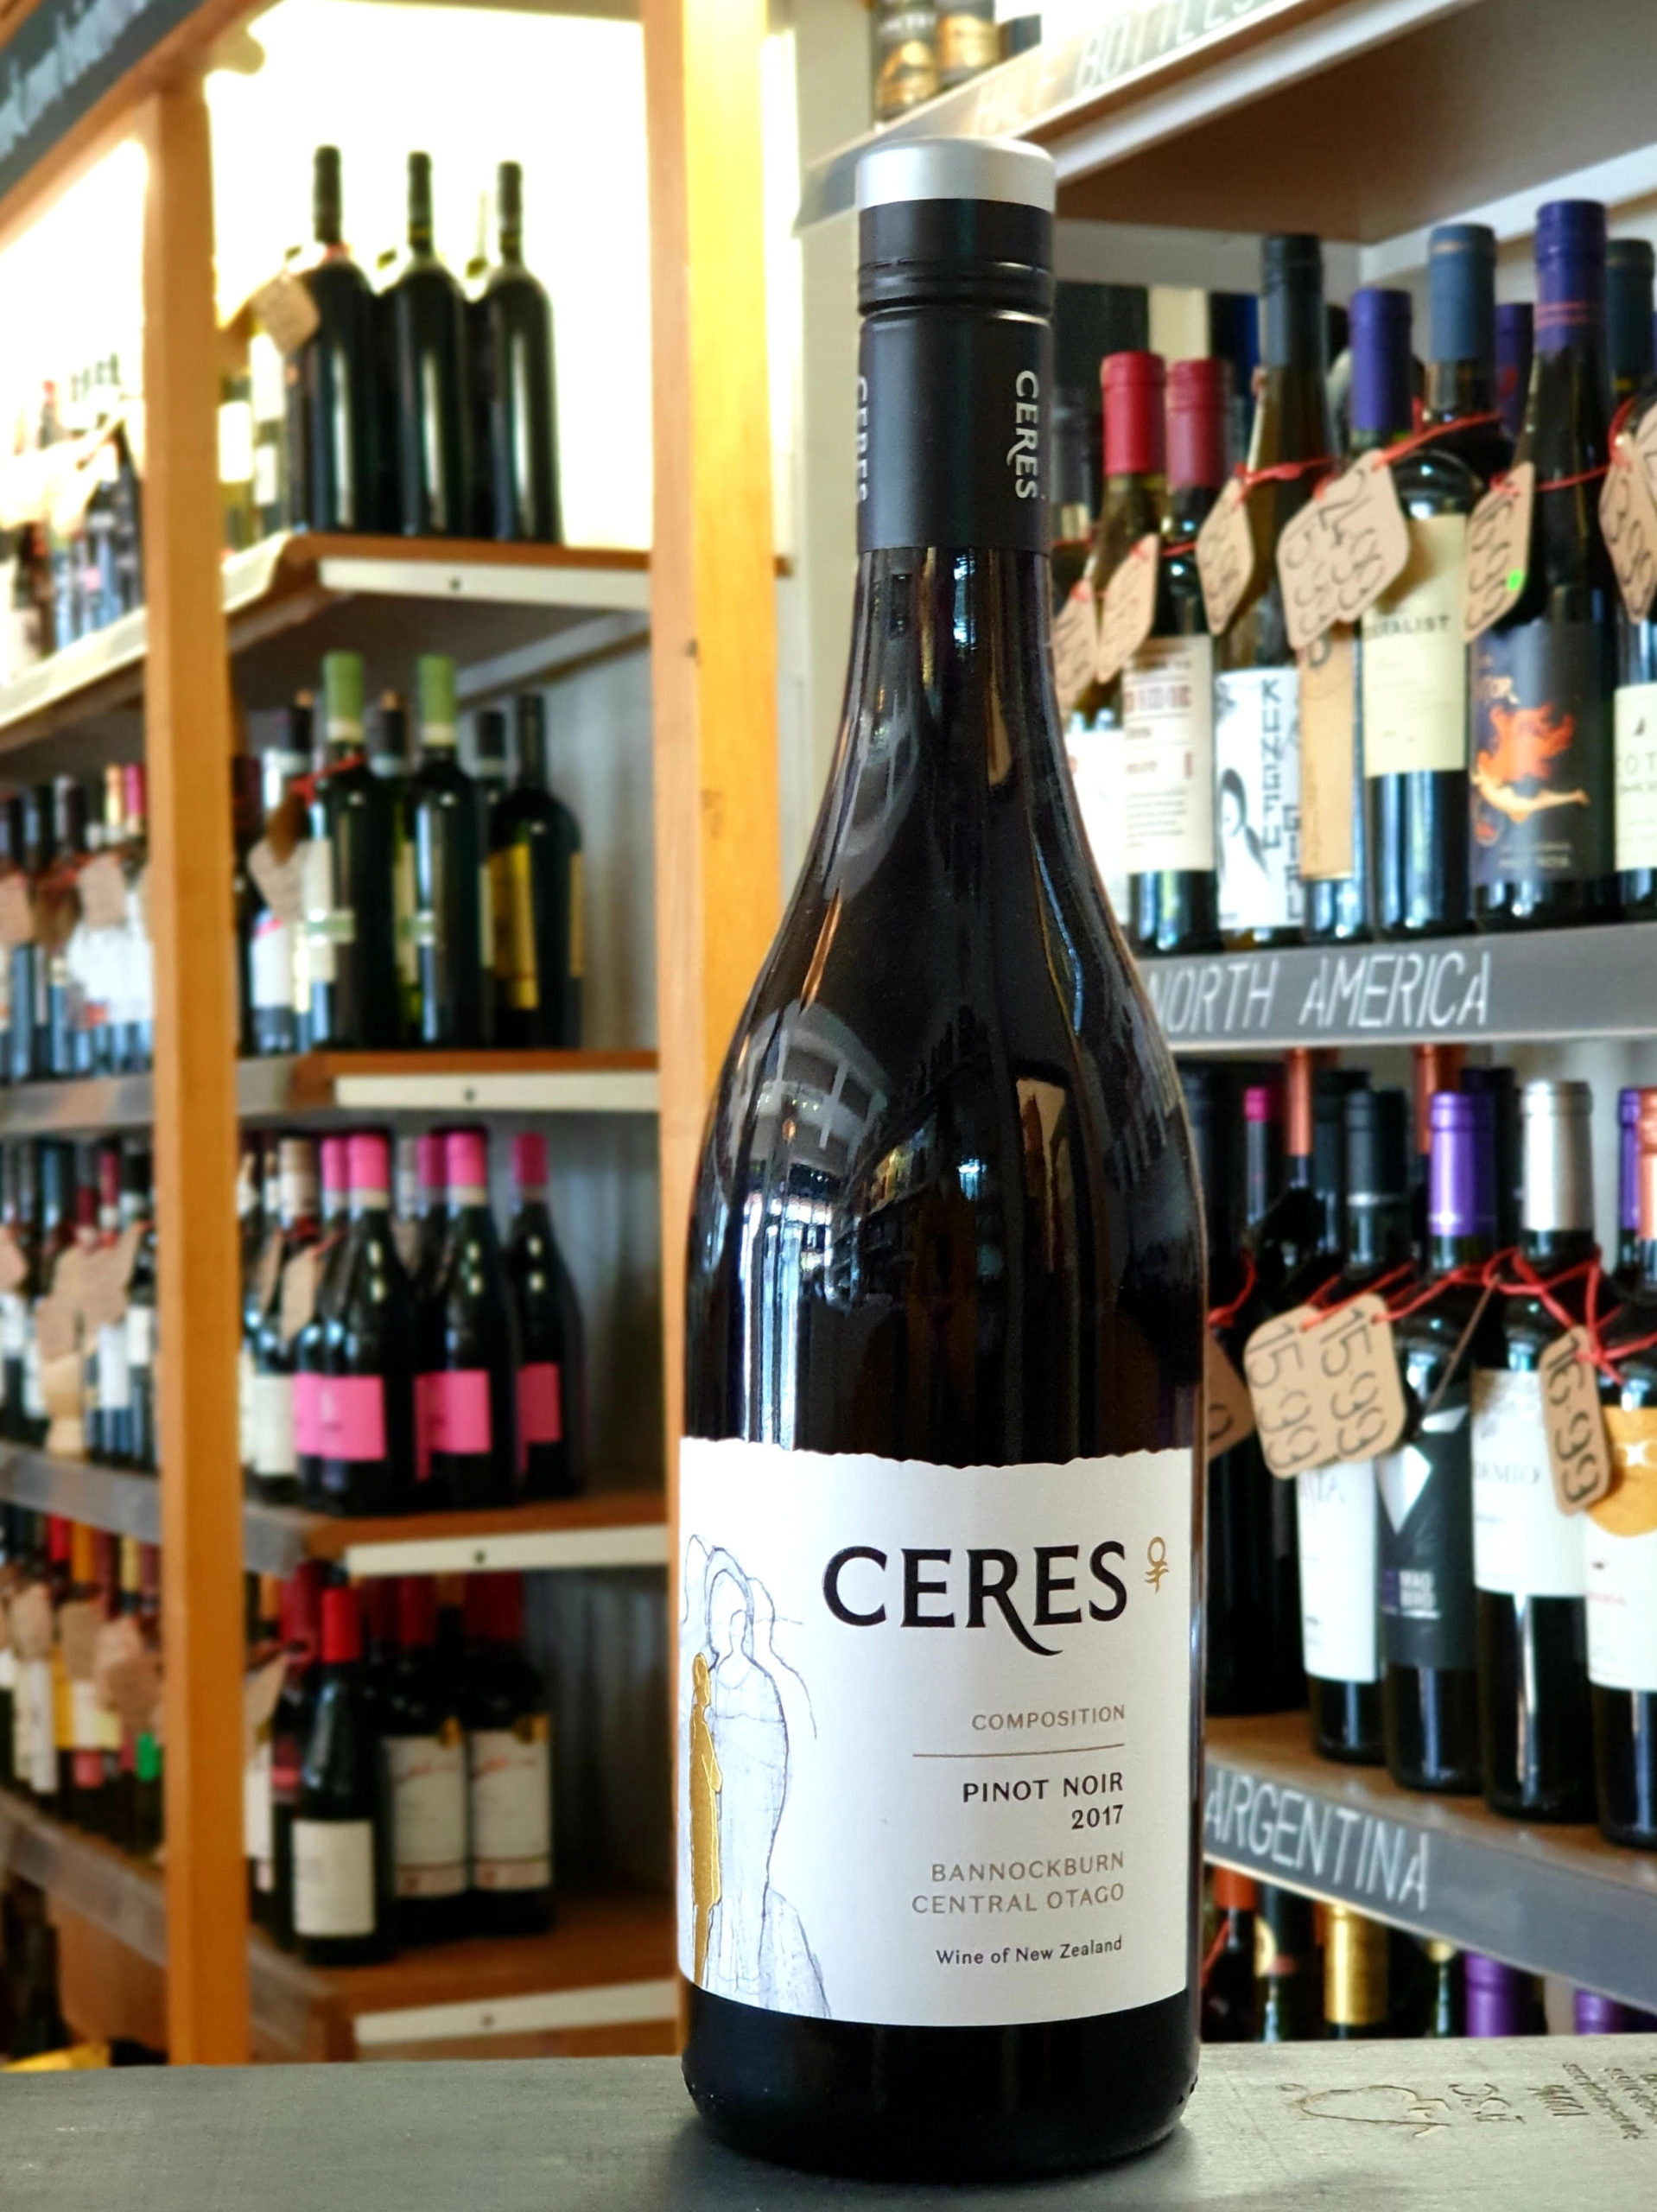 Ceres Composition Pinot Noir – 2017